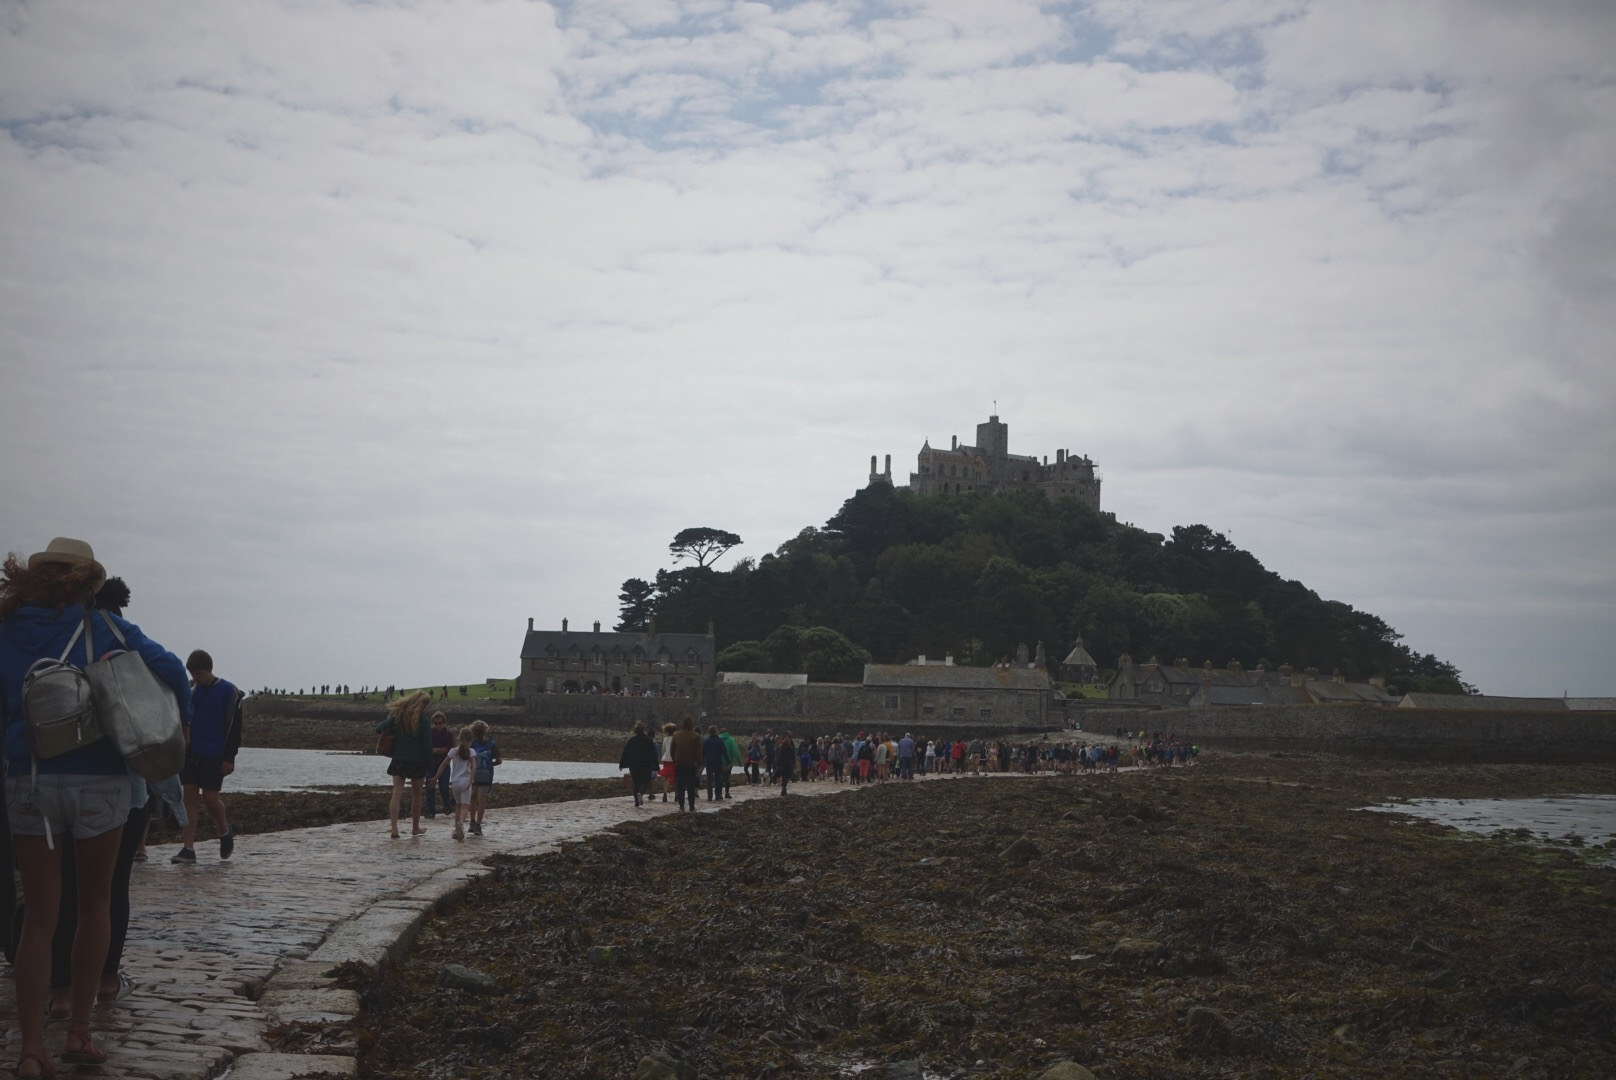 Walking along the causeway to     St. Michael's Mount     while the tide was out. St. Michael's Mount is not to be confused with the much larger     Mont Saint-Michel    , located in France — although there are obviously similarities!